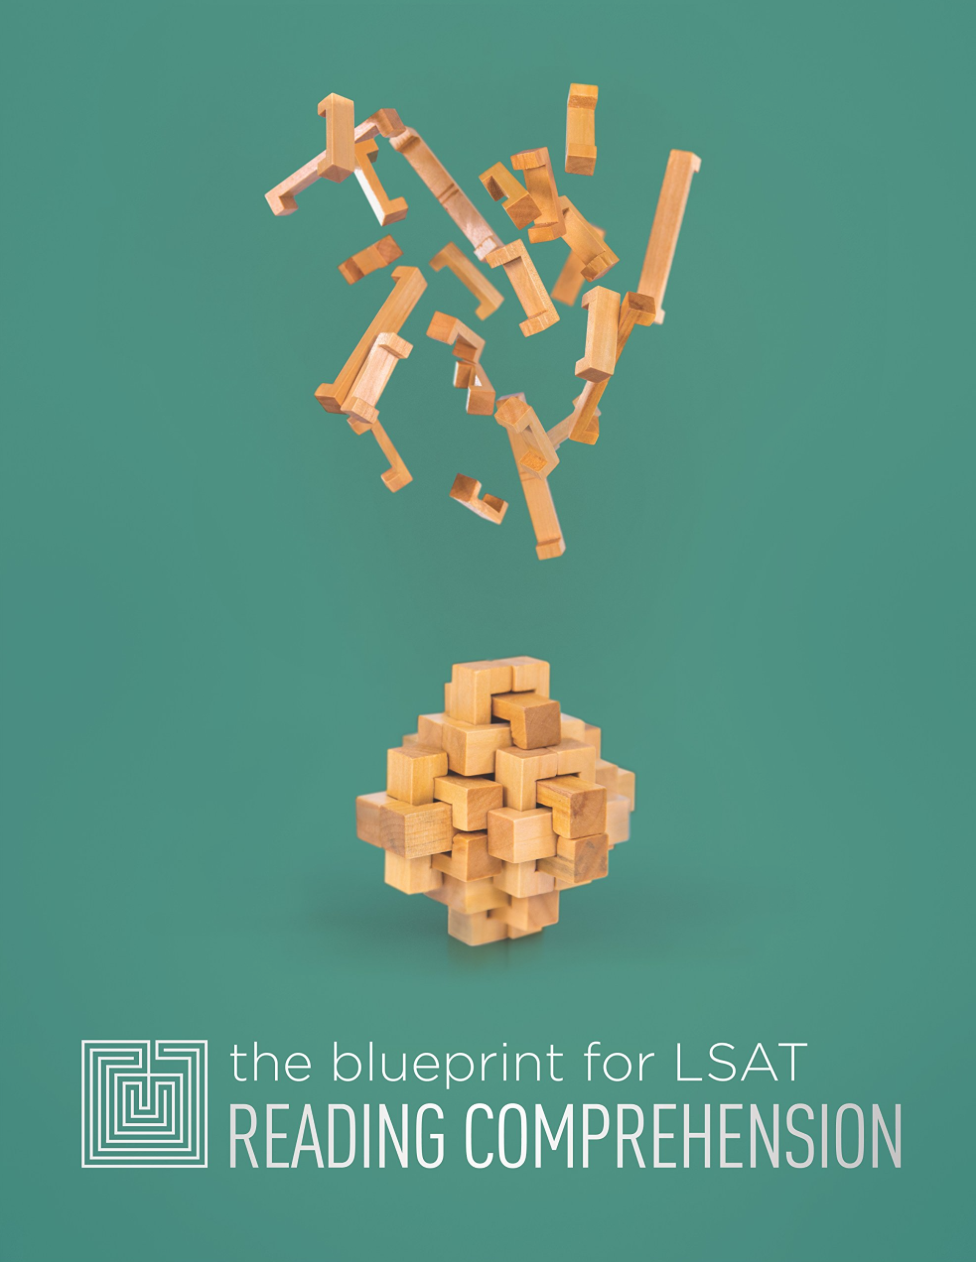 New lsat reading comprehension book released by blueprint test additional images malvernweather Gallery